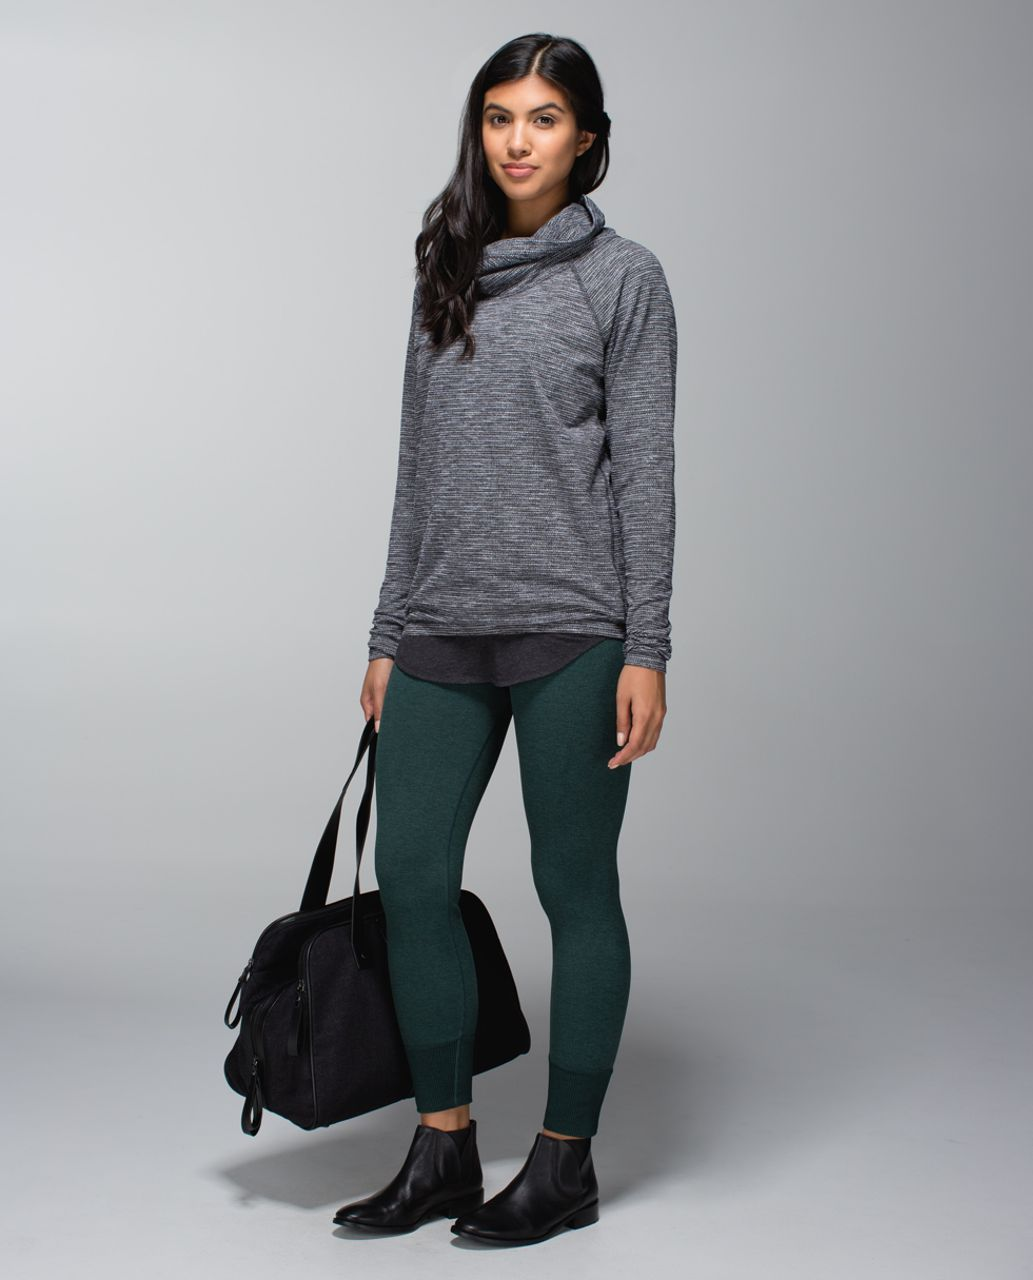 Lululemon Healthy Heart Pullover - Coco Pique Black